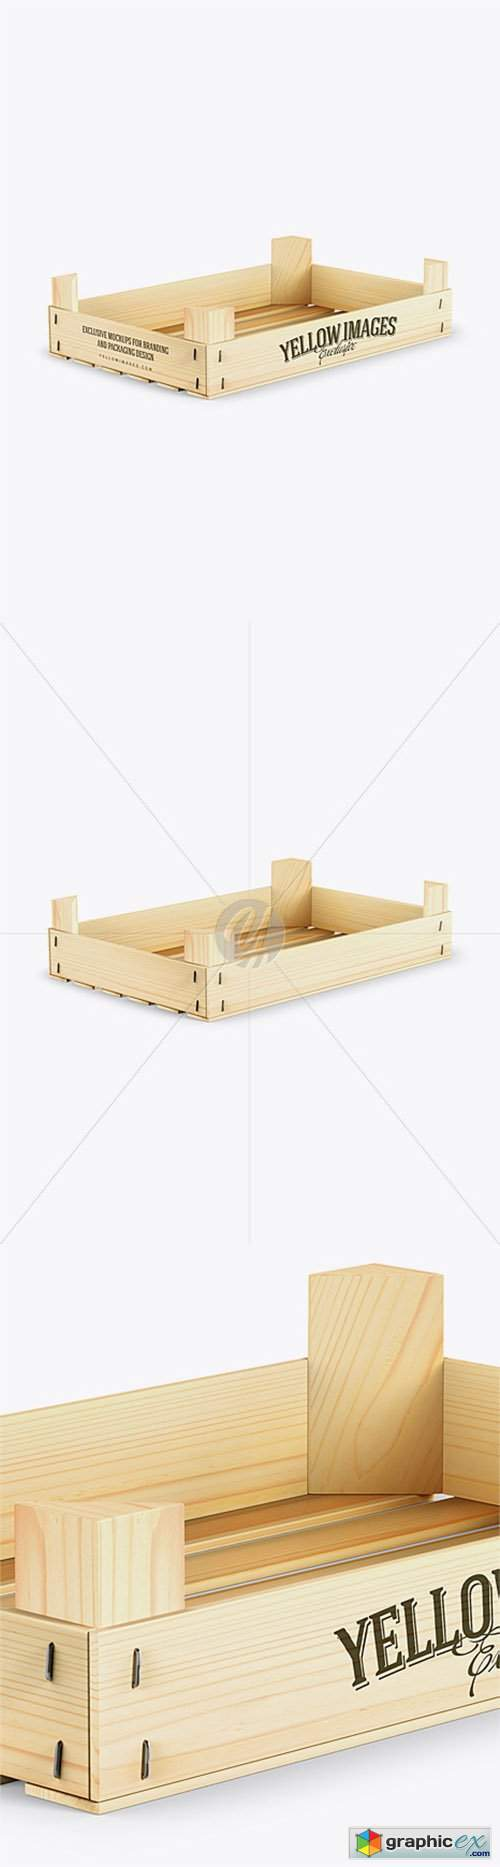 Empty Wooden Crate Mockup - Half Side View (High-Angle Shot)